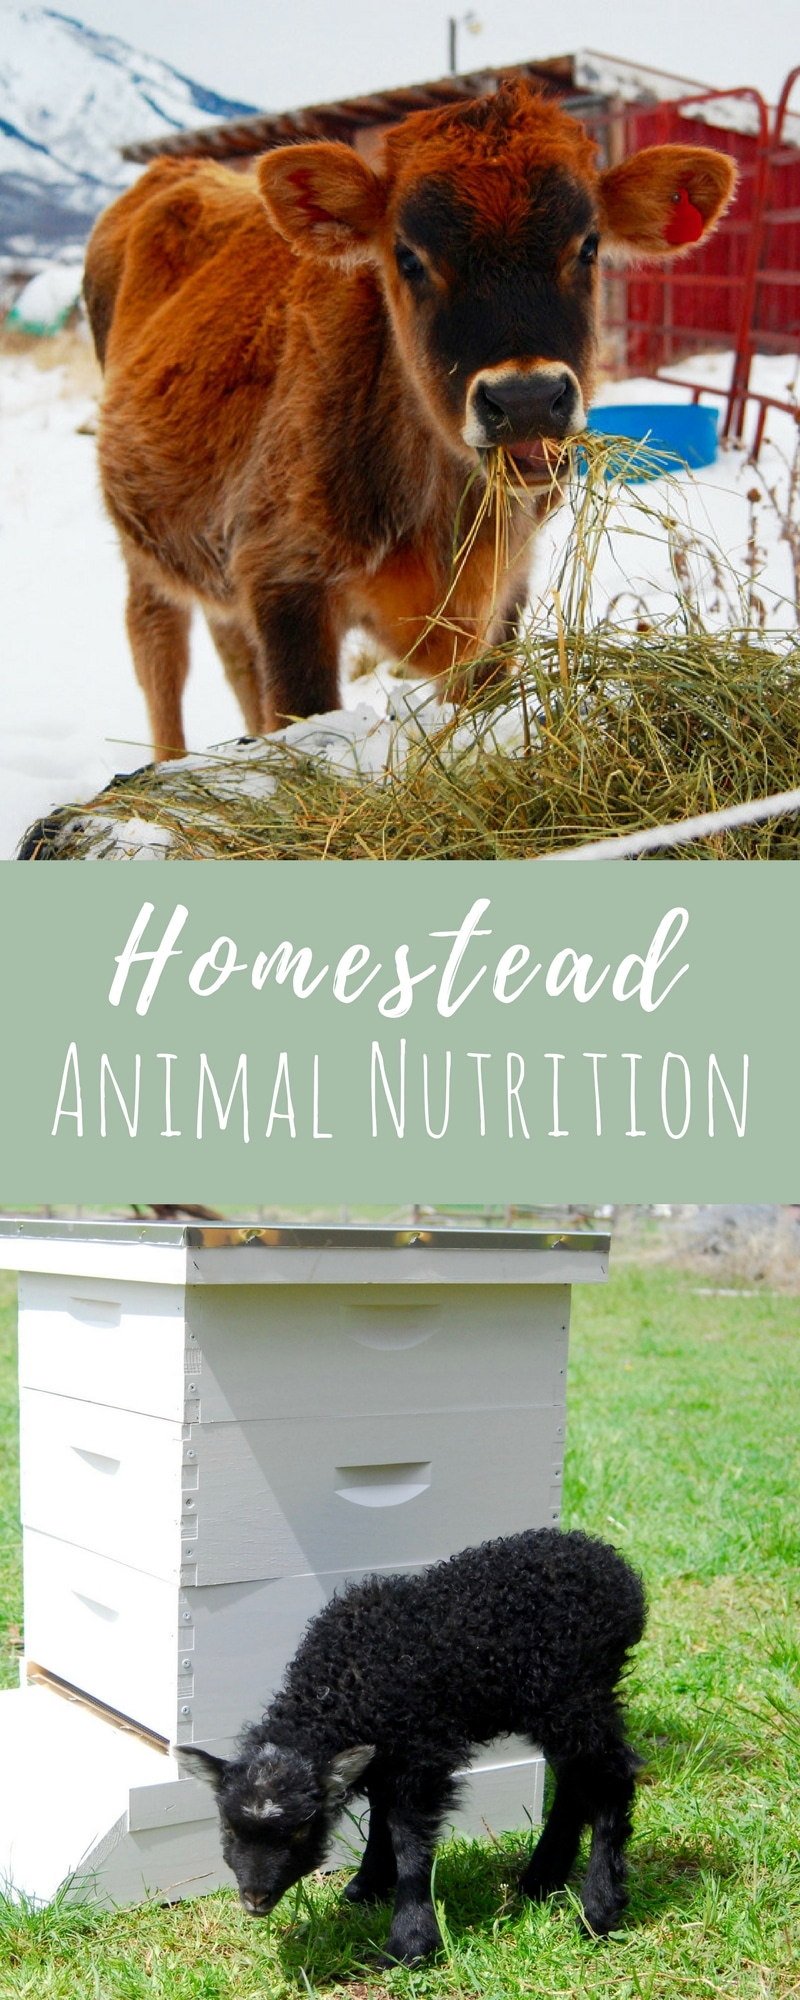 Do you have an animal nutrition management plan on your farm? It should be one of your main focuses. It is simple to implement and proper nutrition is vital for animal health and well-being. Check it out!